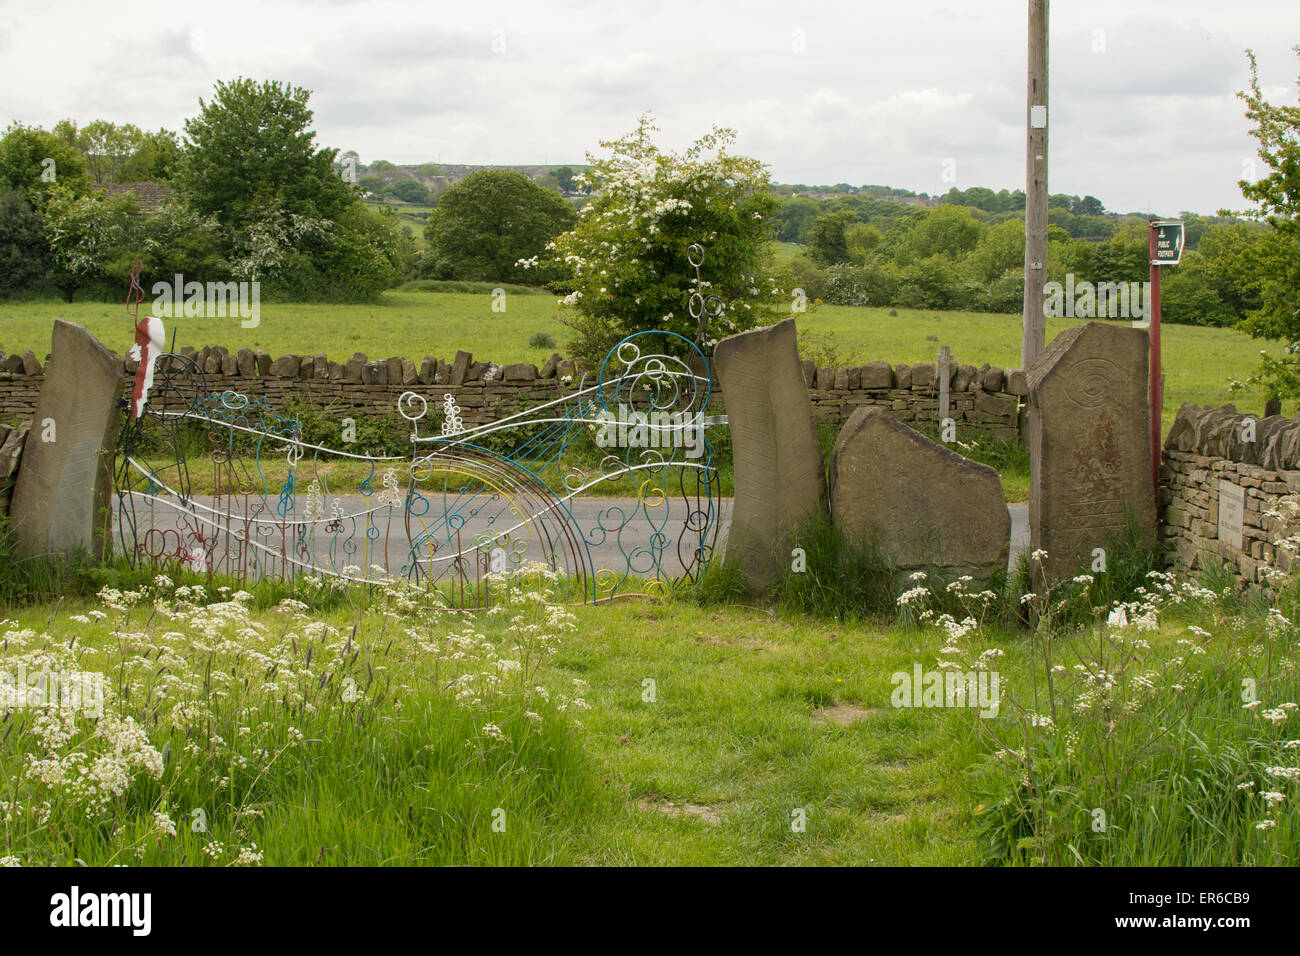 Pye Flatts meadows - beautiful ancient lowland grassland meadows in Hoylandswaine, South Yorkshire, England, UK - Stock Image